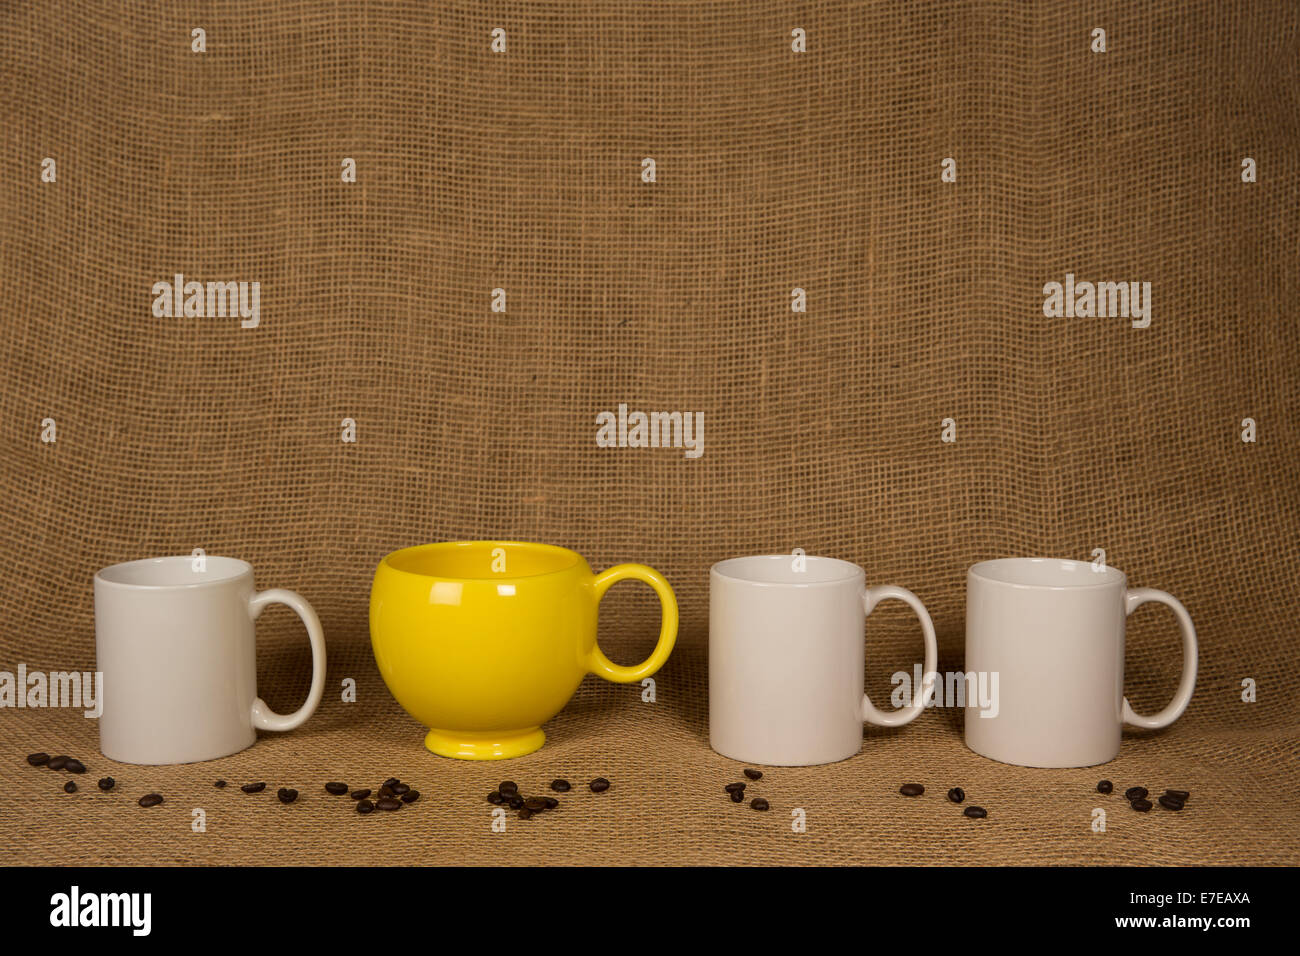 Coffee Mug Background.  One unique yellow mug, three white ones, coffee beans on burlap.  Copy space on mugs and - Stock Image